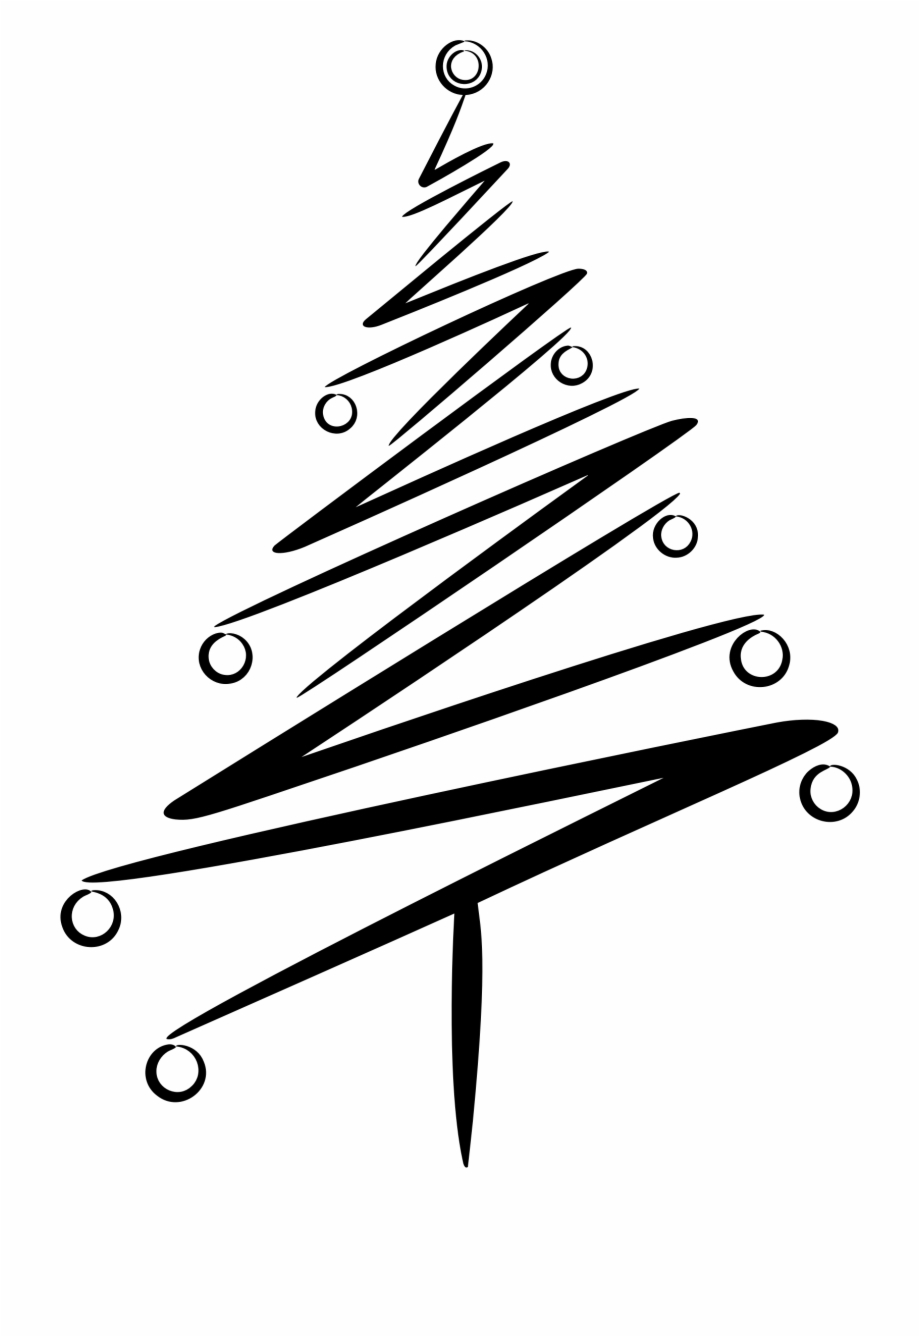 This Free Icons Png Design Of Abstract Christmas Tree